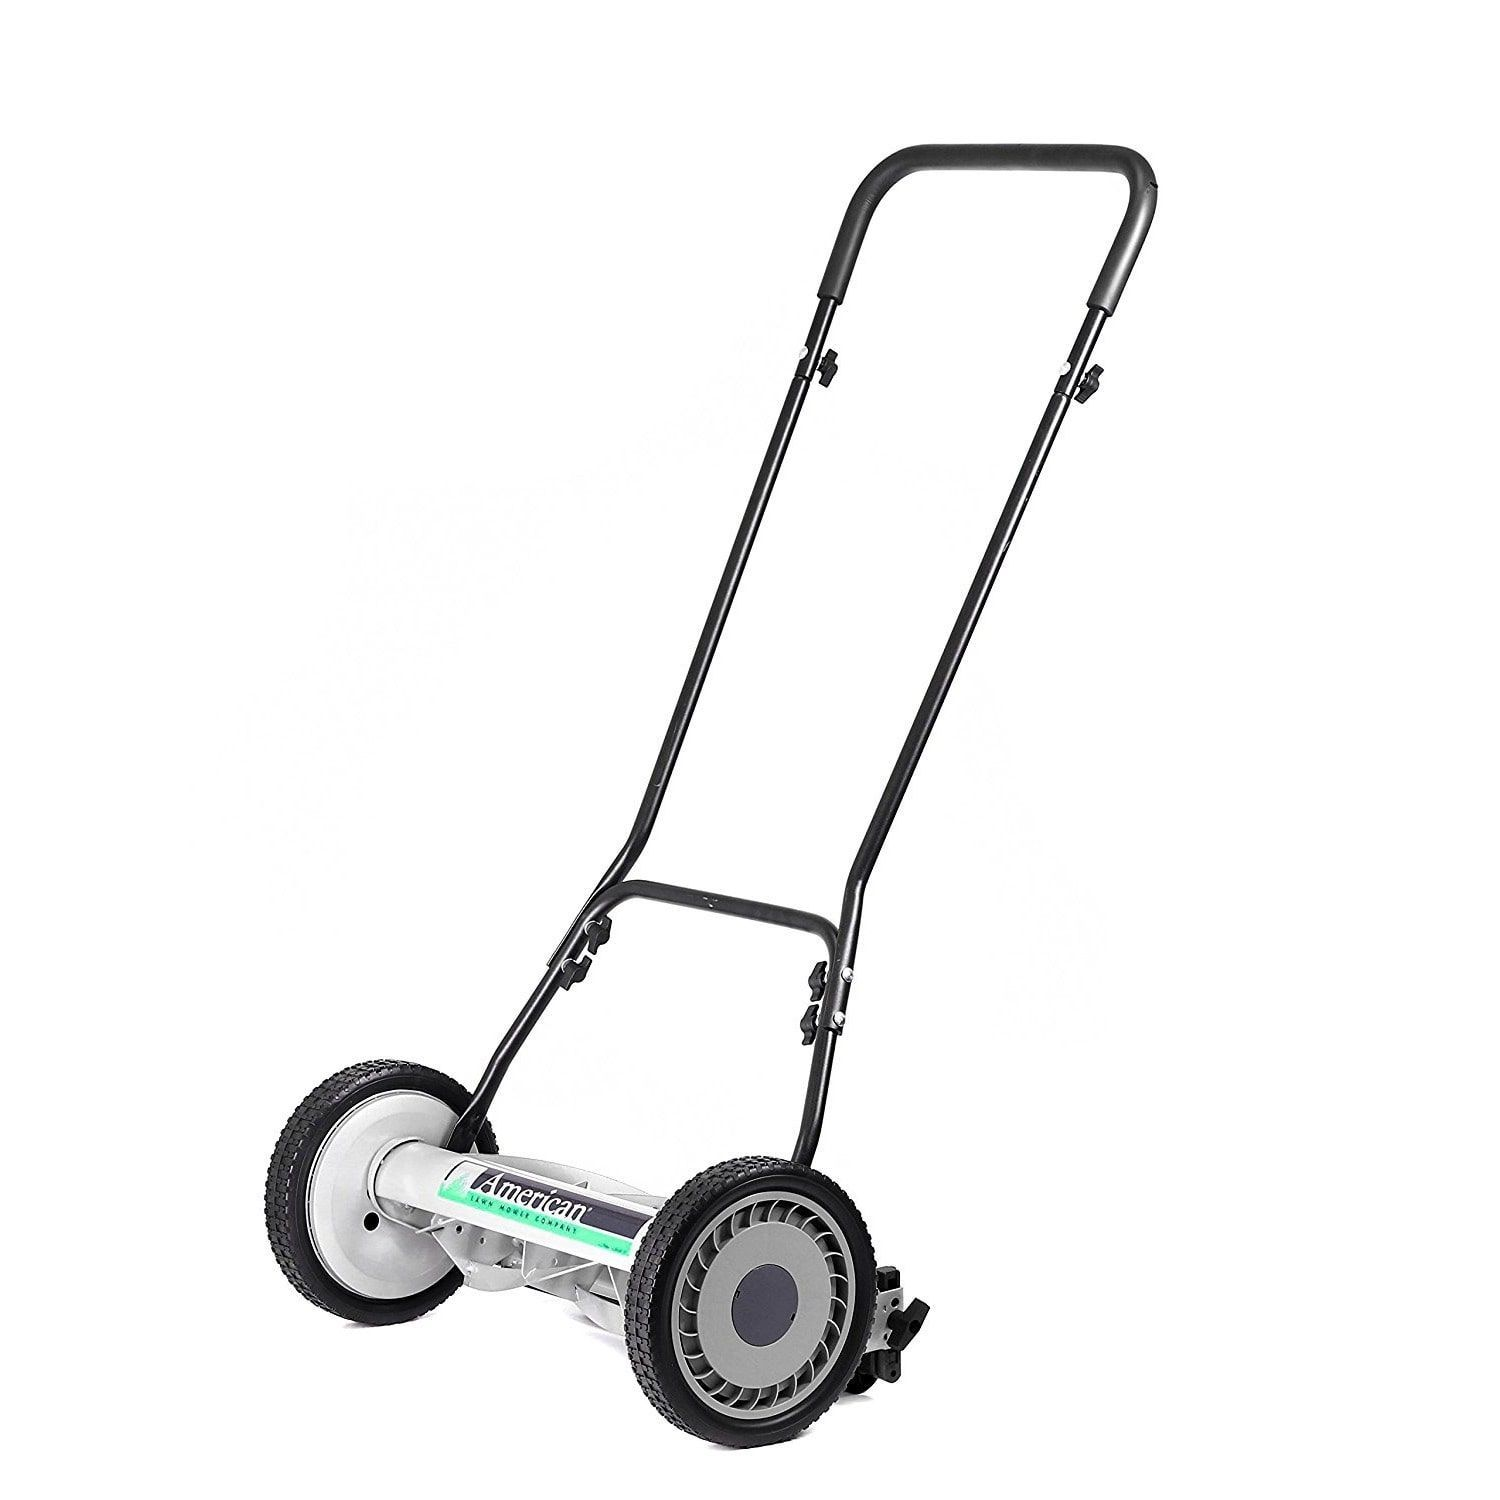 American Lawn Mower 18 inch Deluxe Light Reel Mower American Lawn